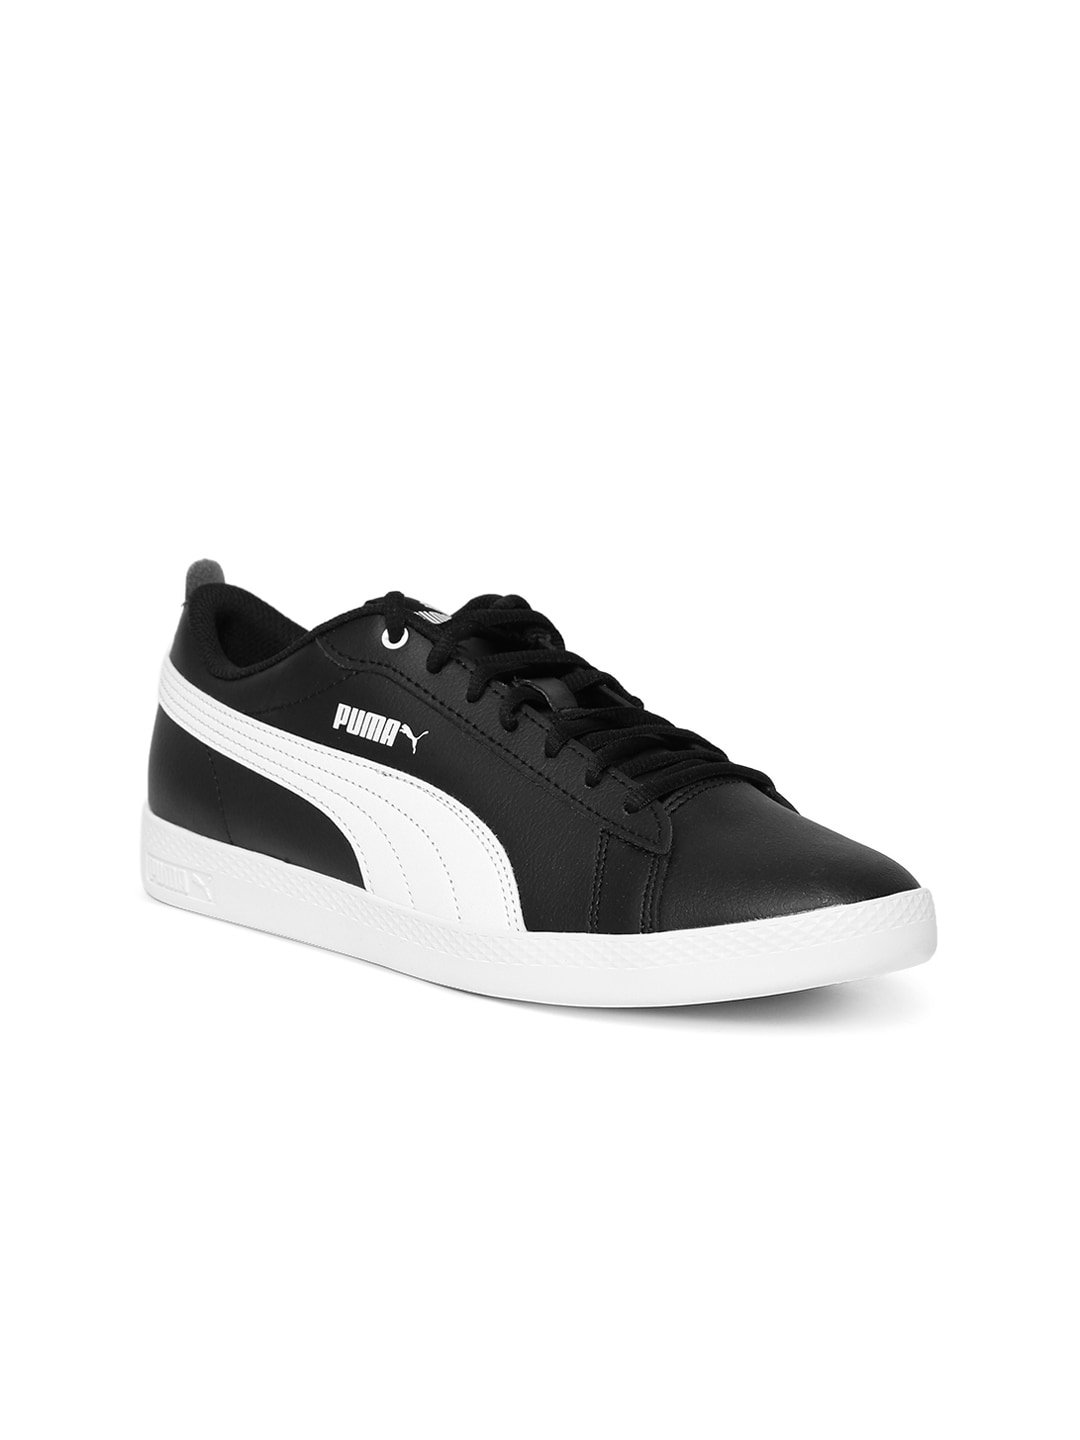 Puma Sneakers - Buy Puma Sneakers Online in India eb46281d3